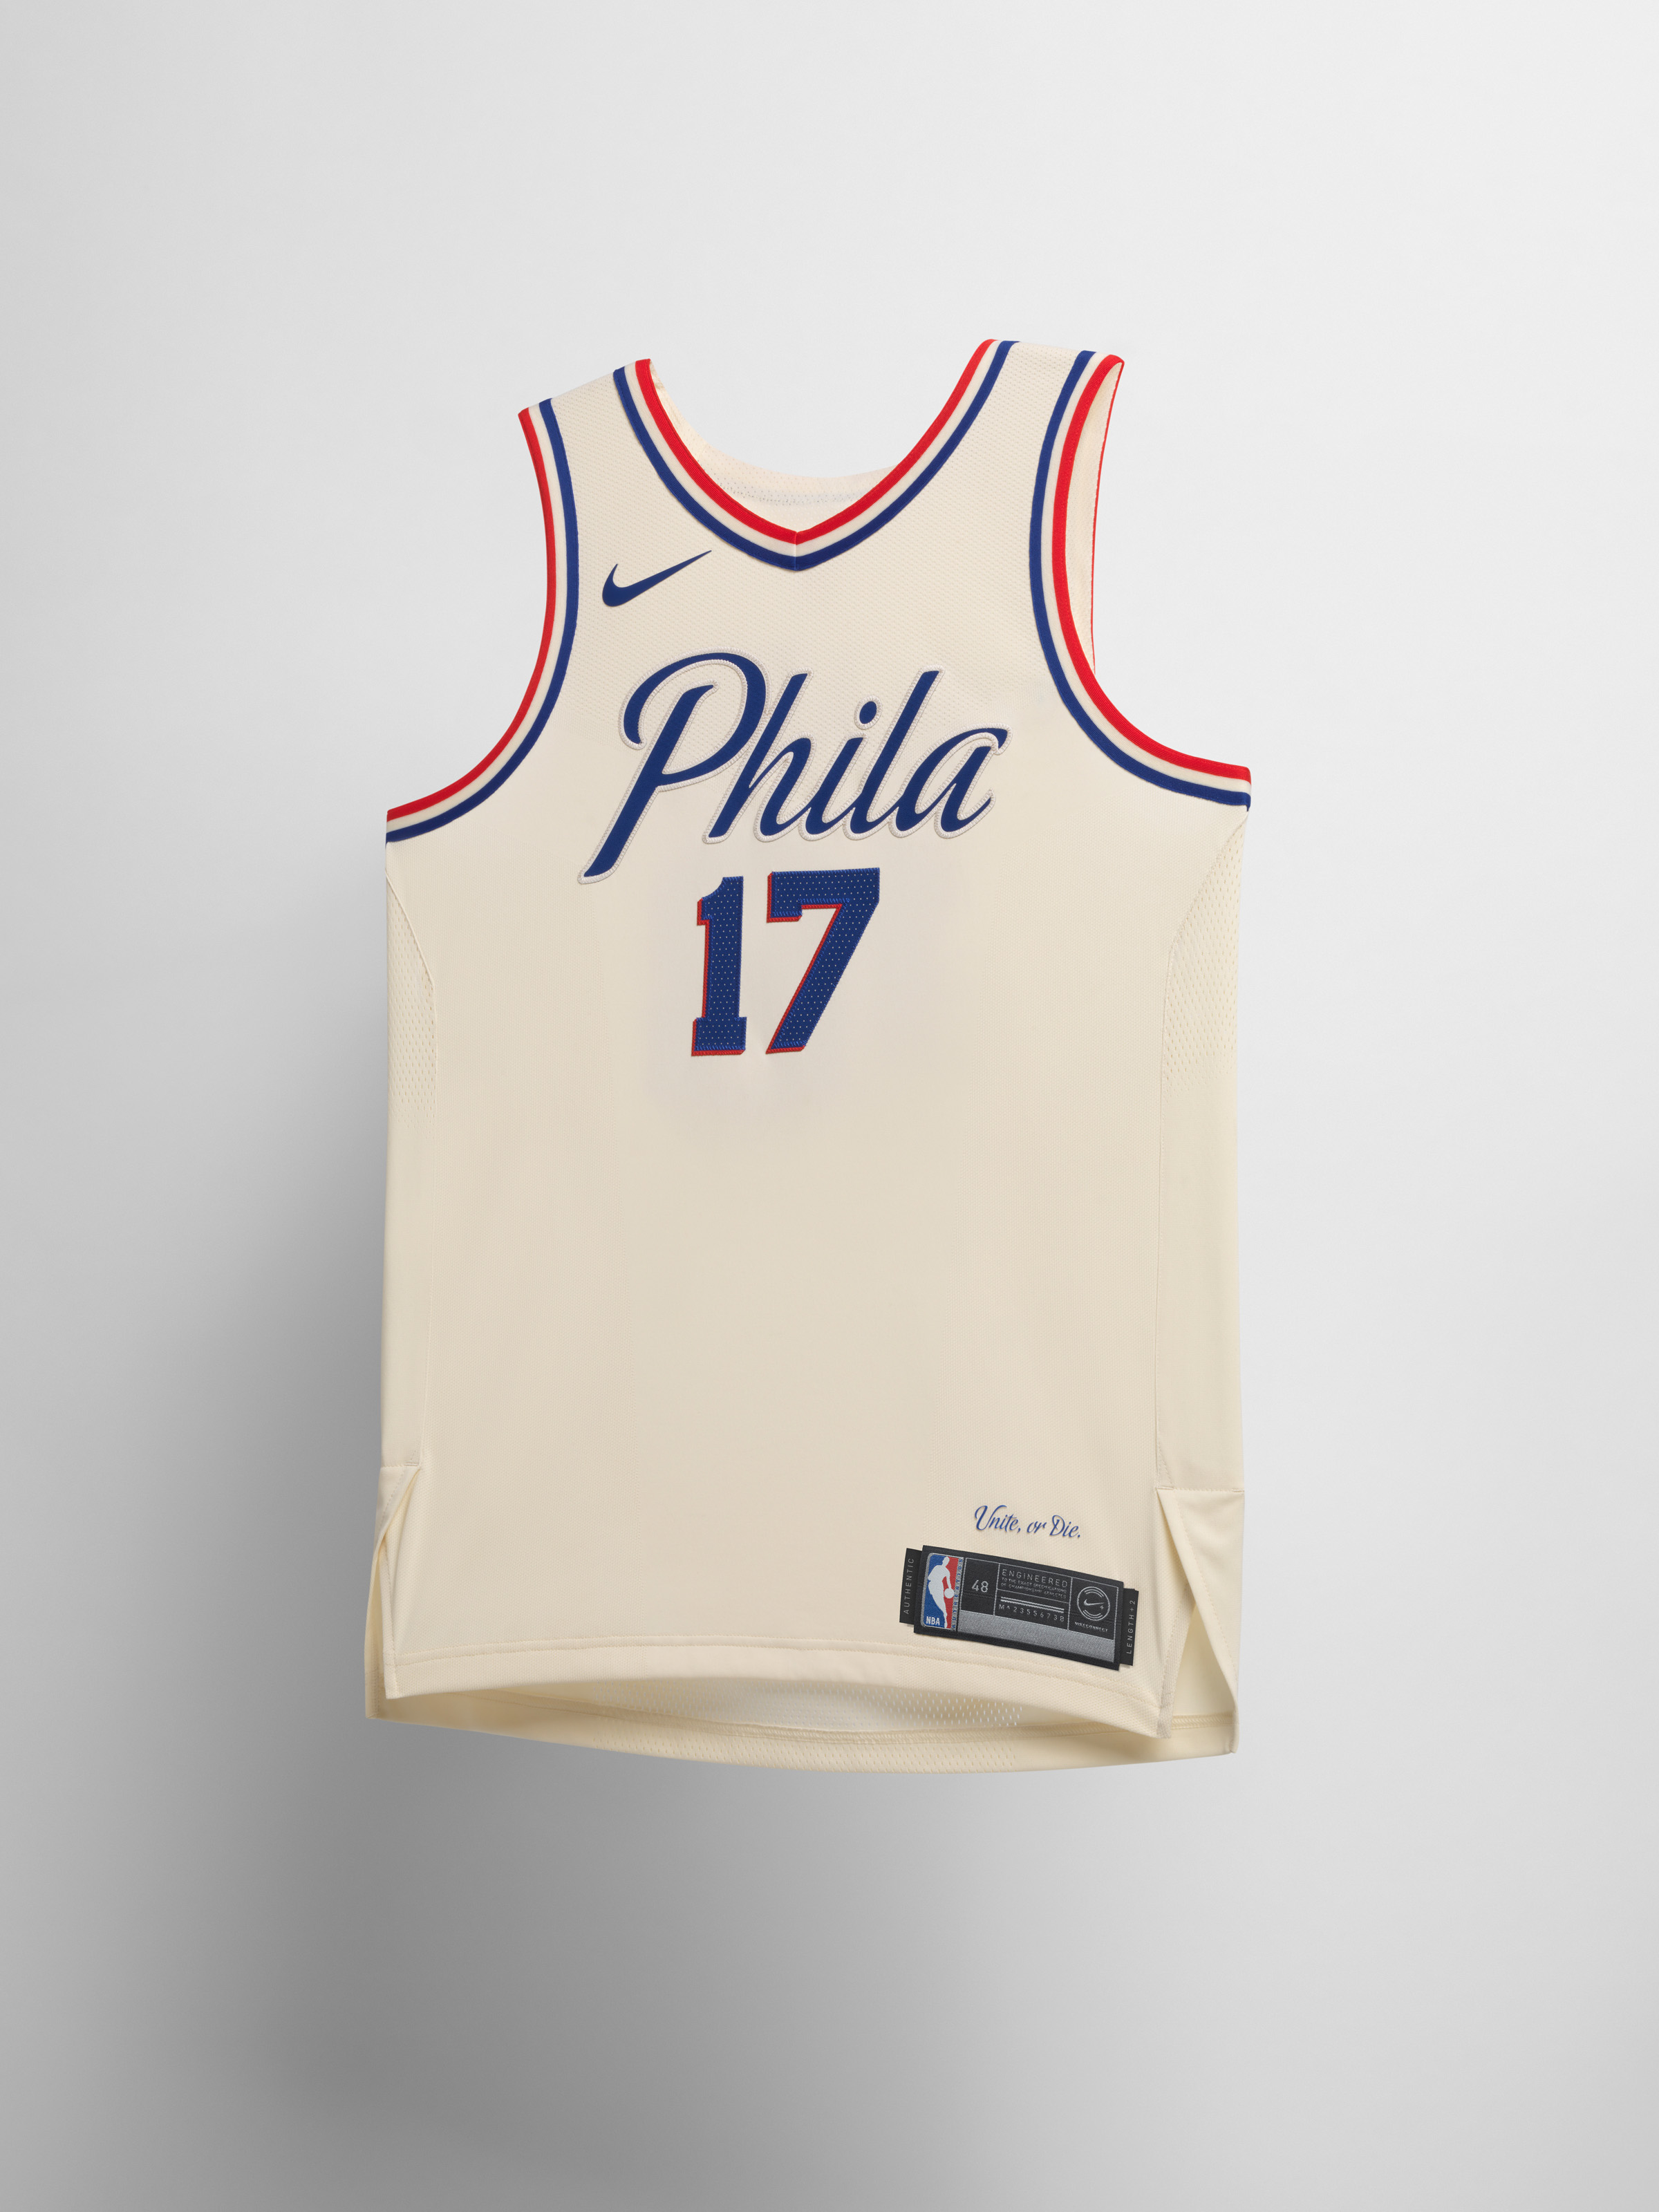 sixers city edition jersey 2018